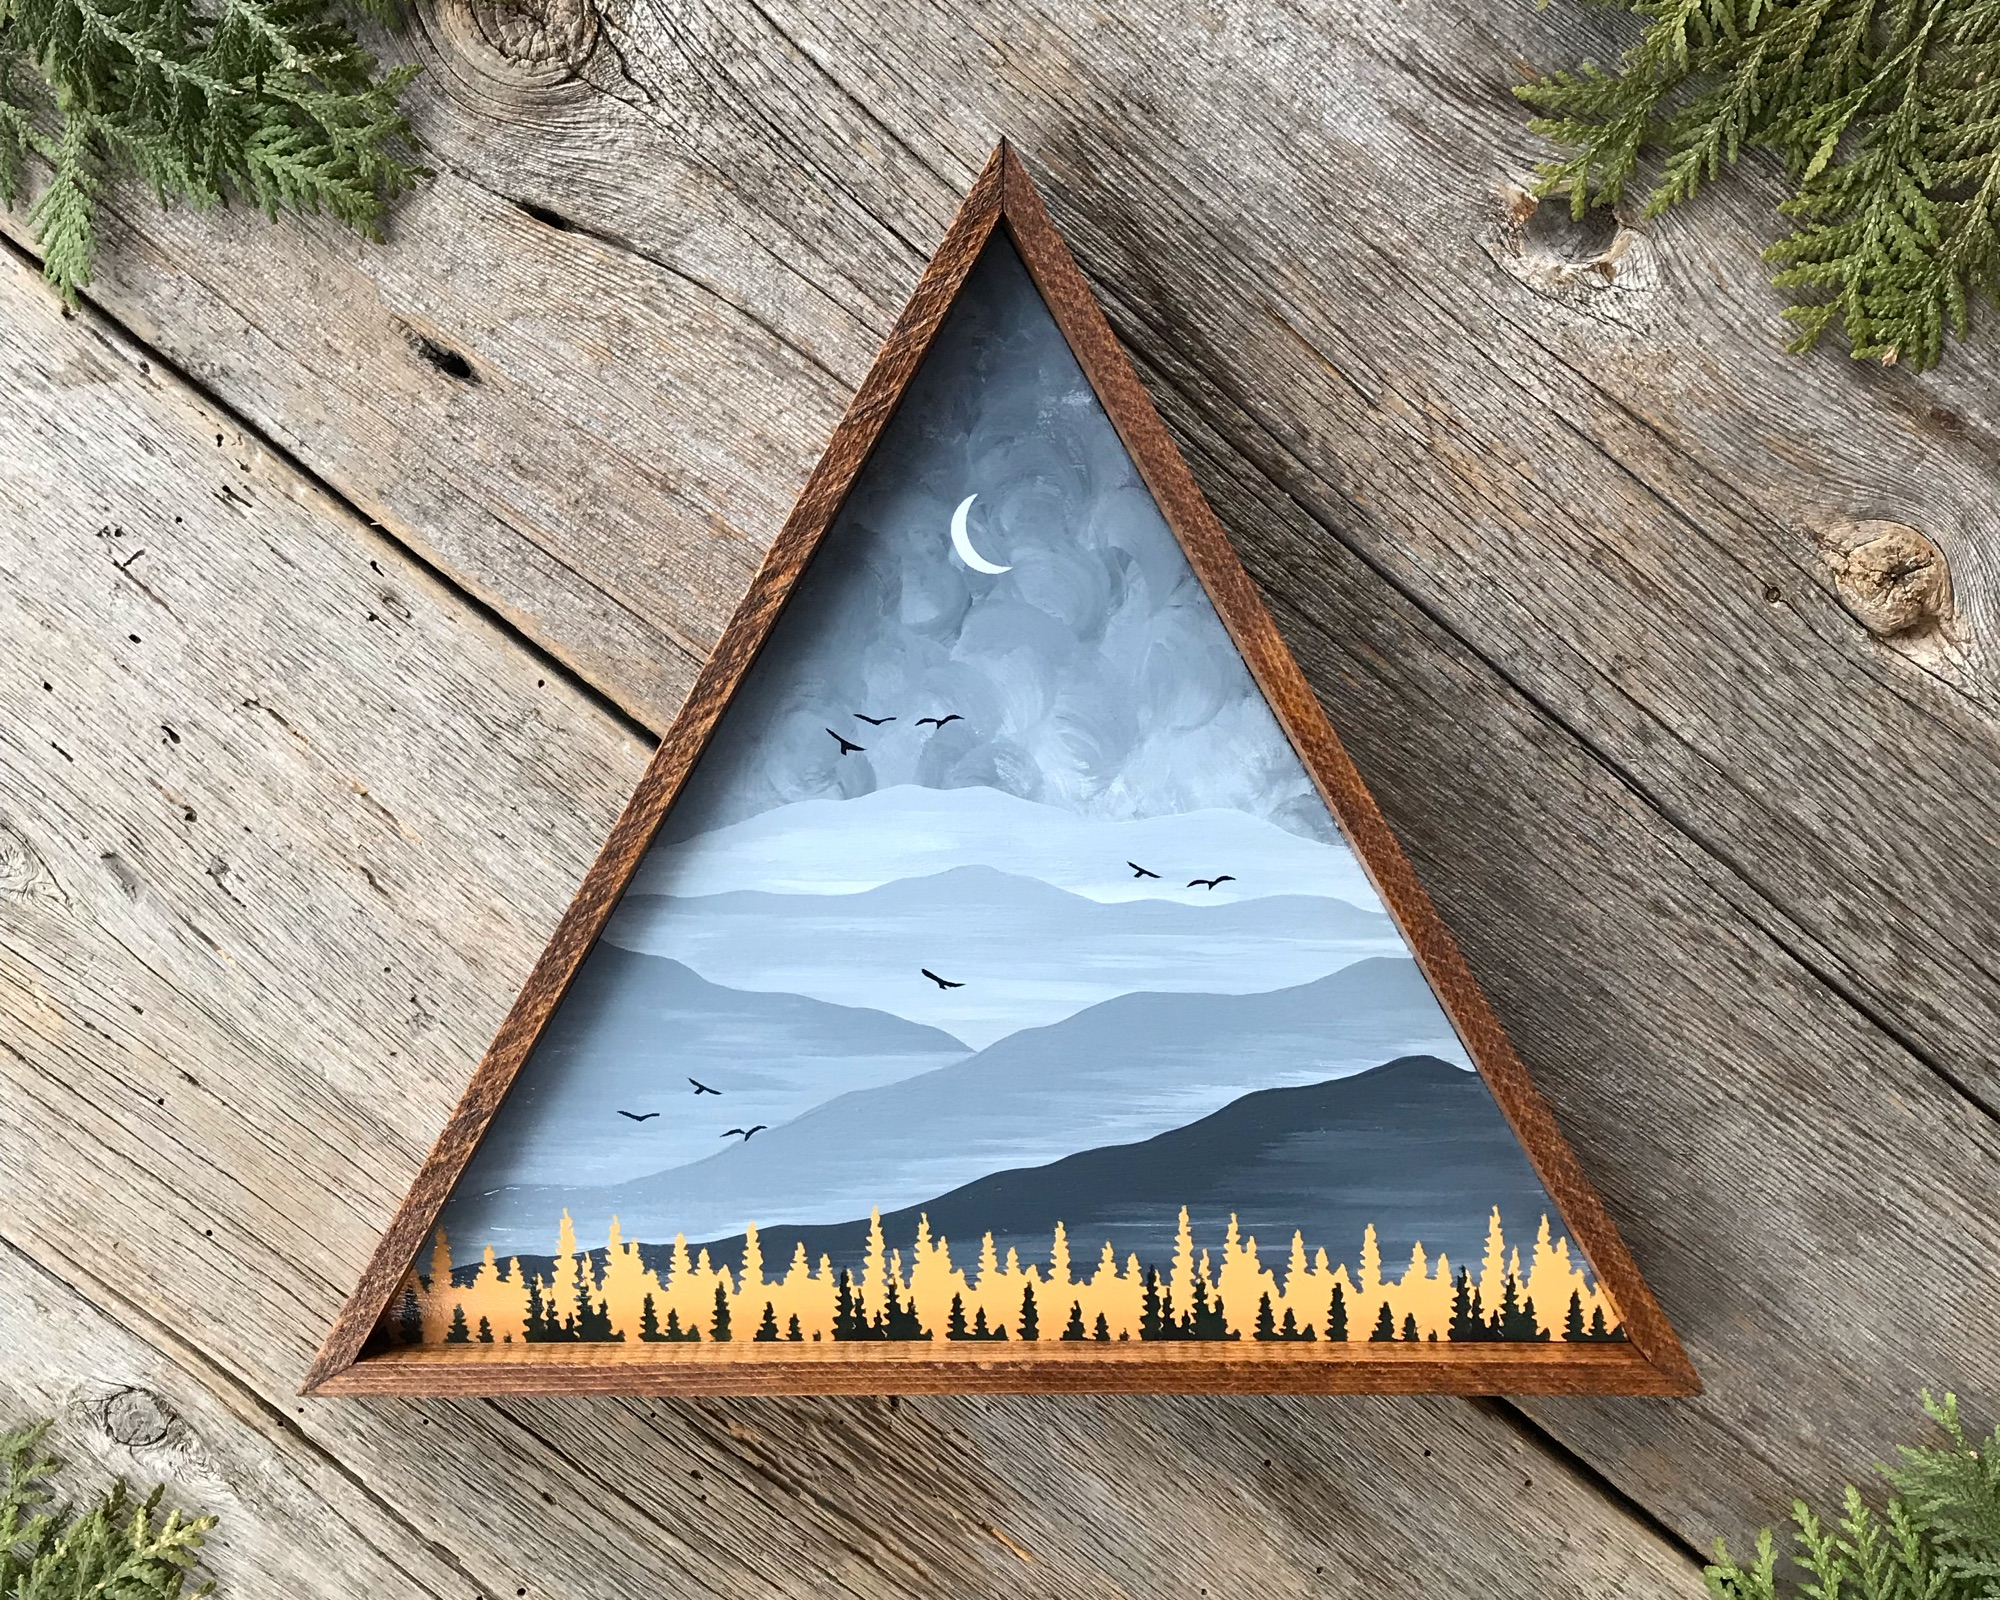 Mountain Wall Art, Triangle Decor, Mountain Peaks, Rustic Style Home Decor